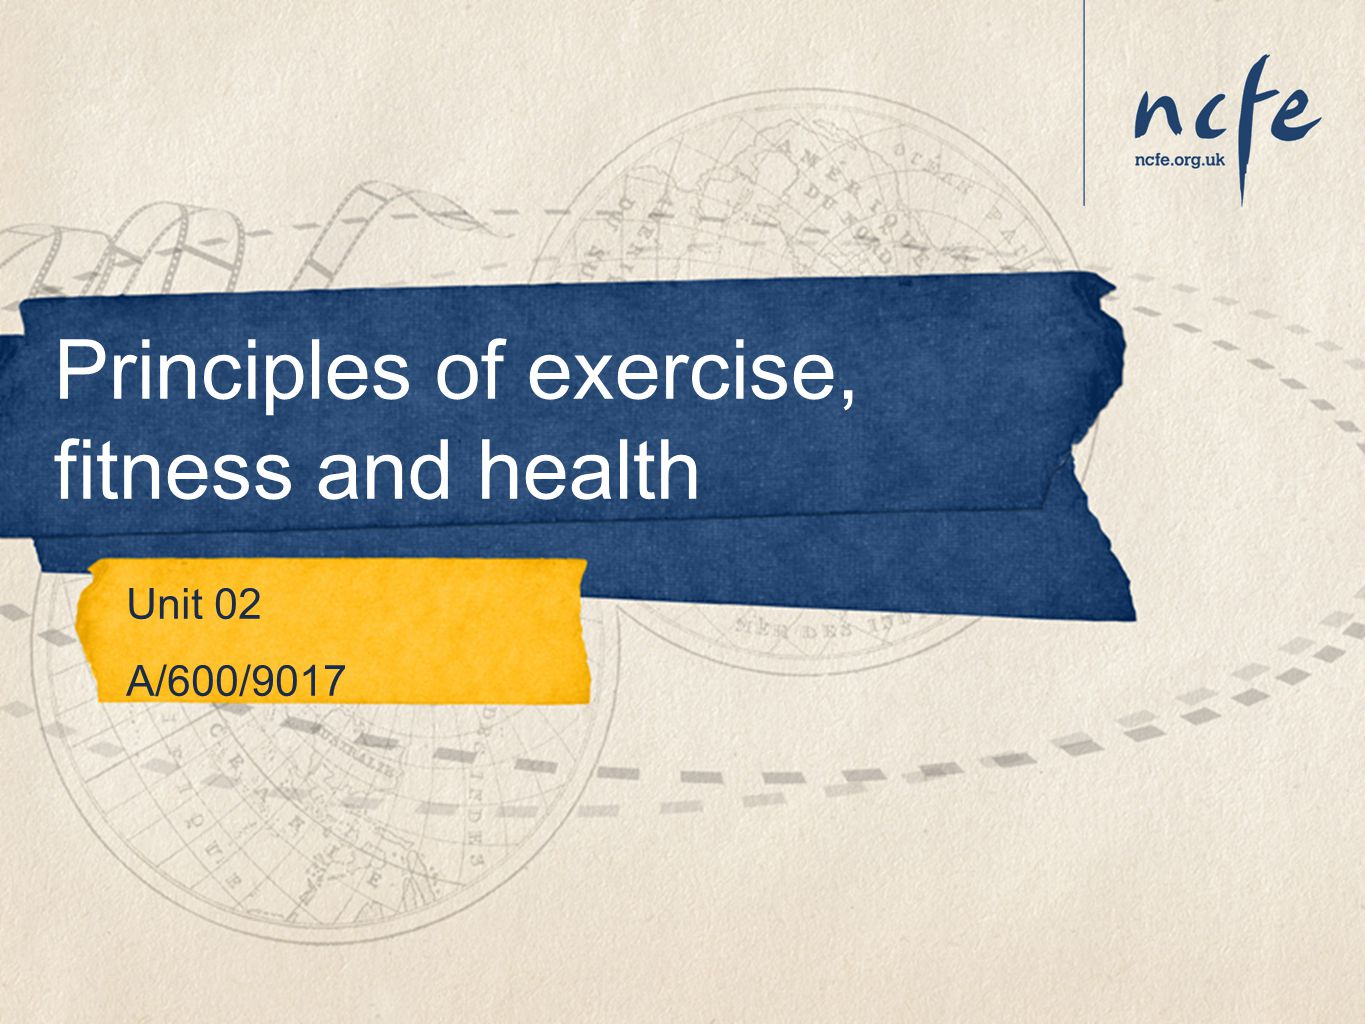 Principles of exercise, fitness and health